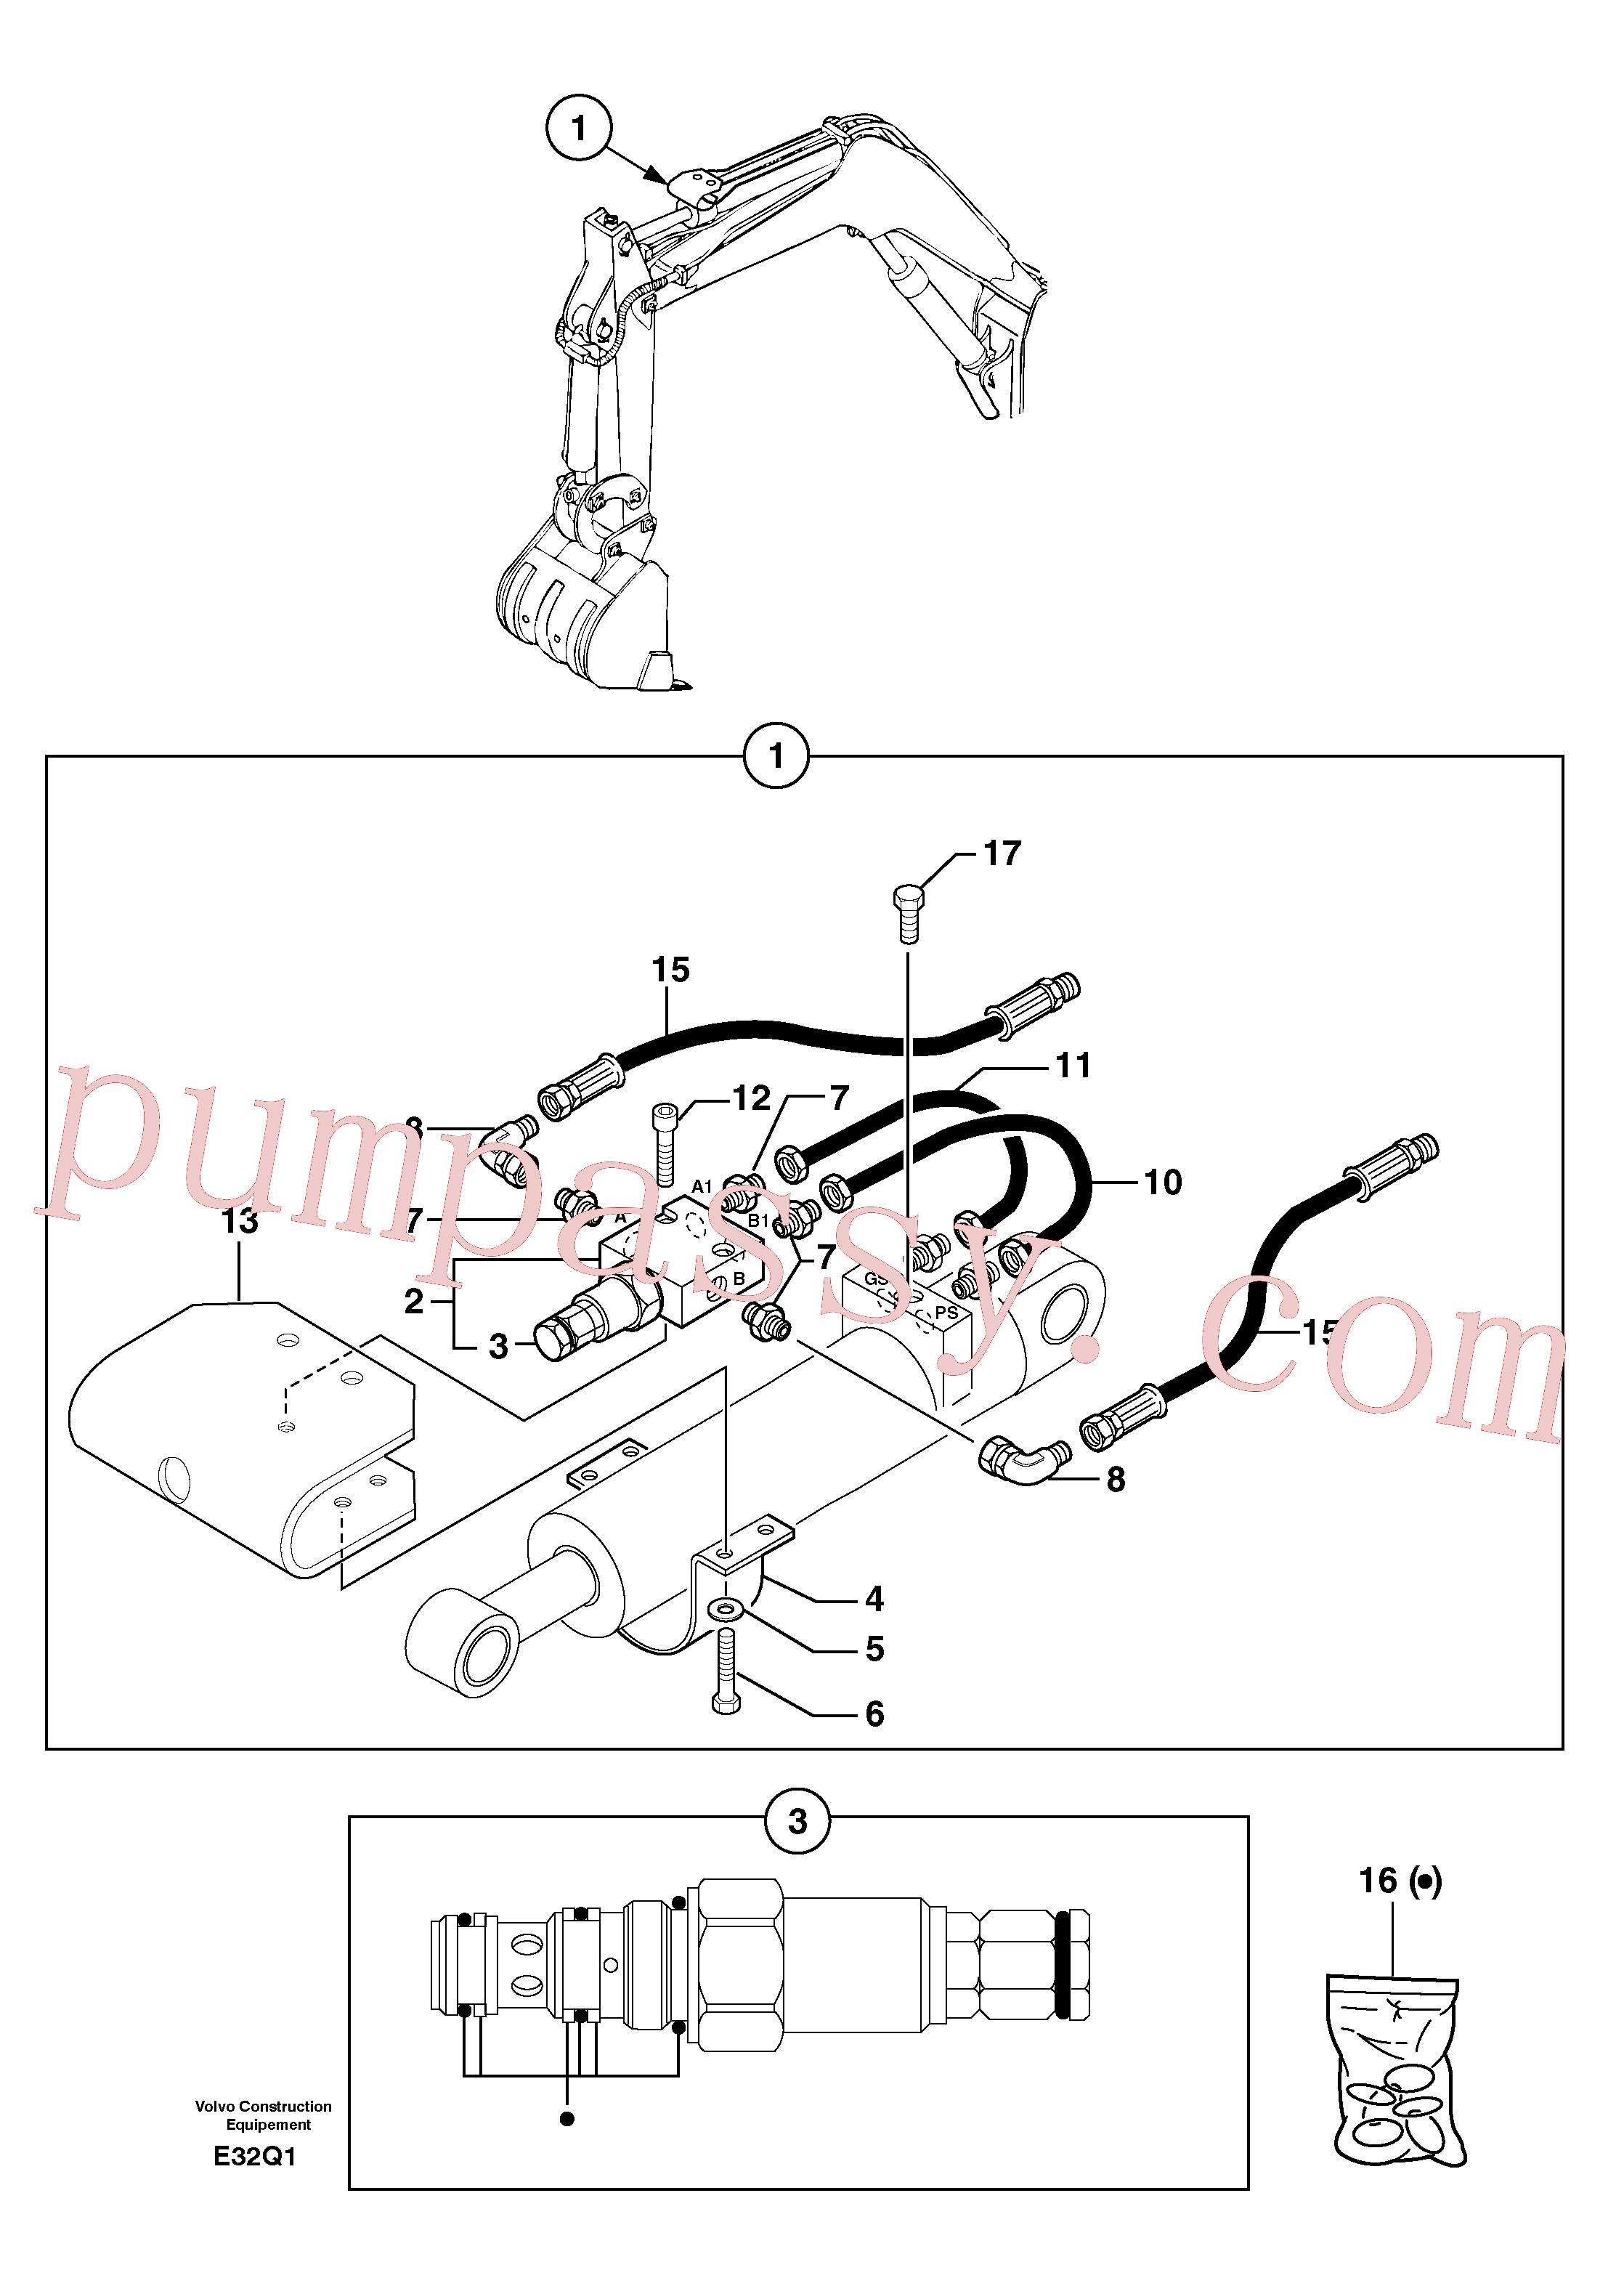 PJ5900213 for Volvo Safety valve ( dipper arm cylinder )(E32Q1 assembly)